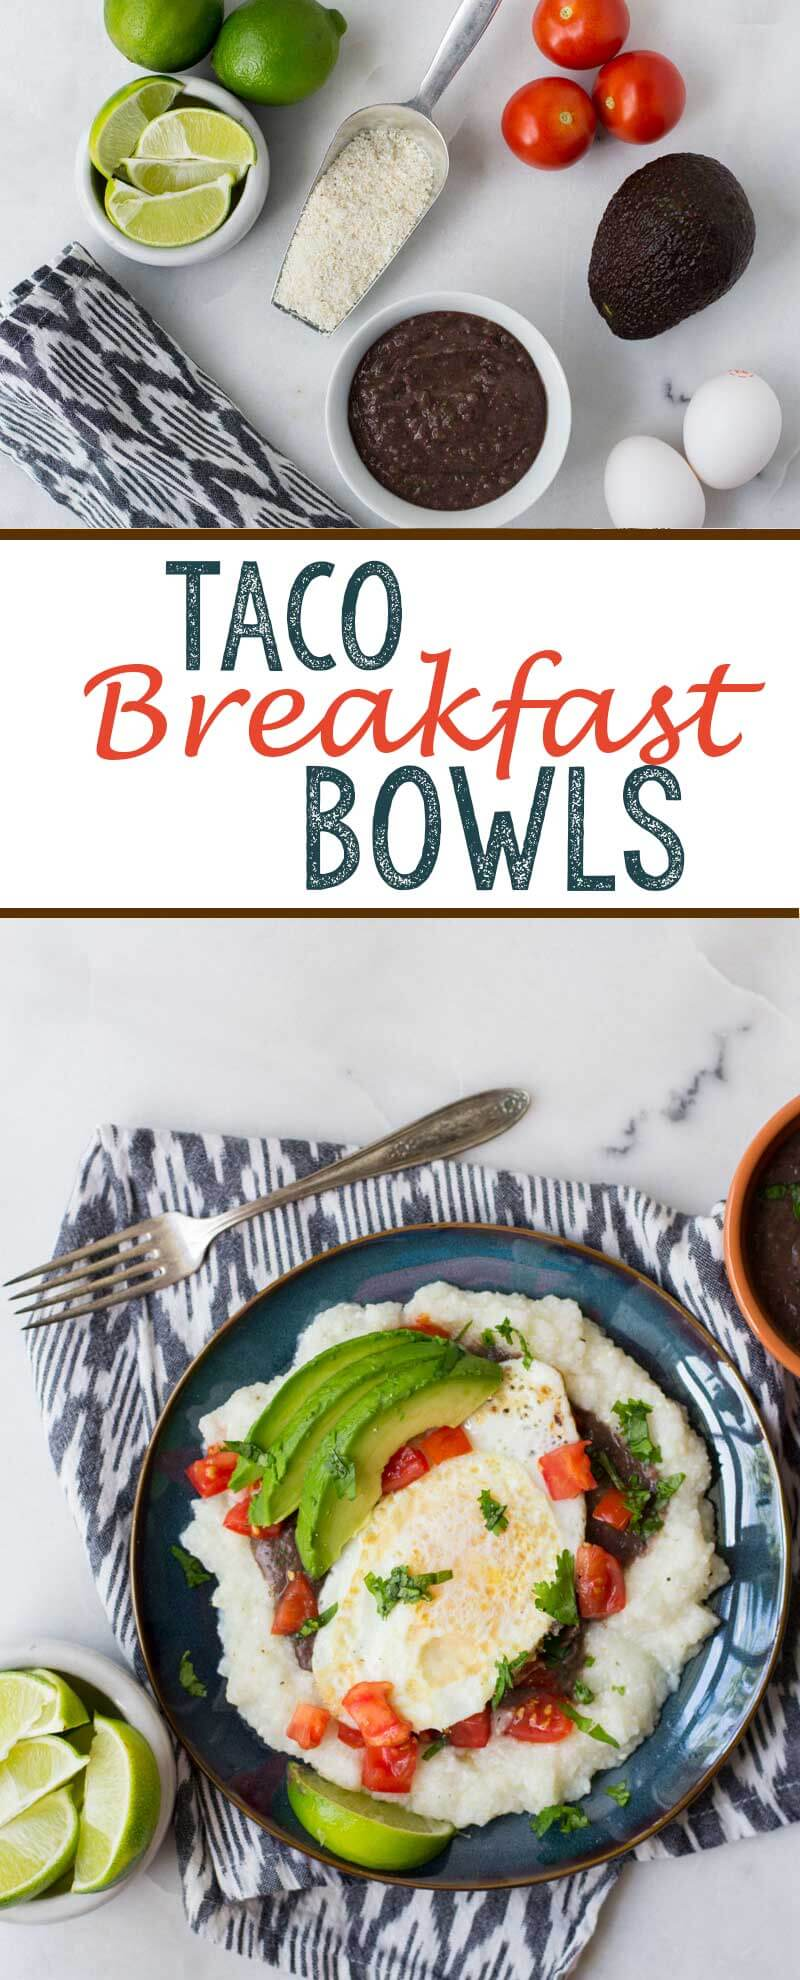 Taco breakfast bowls are a mouthwatering breakfast option